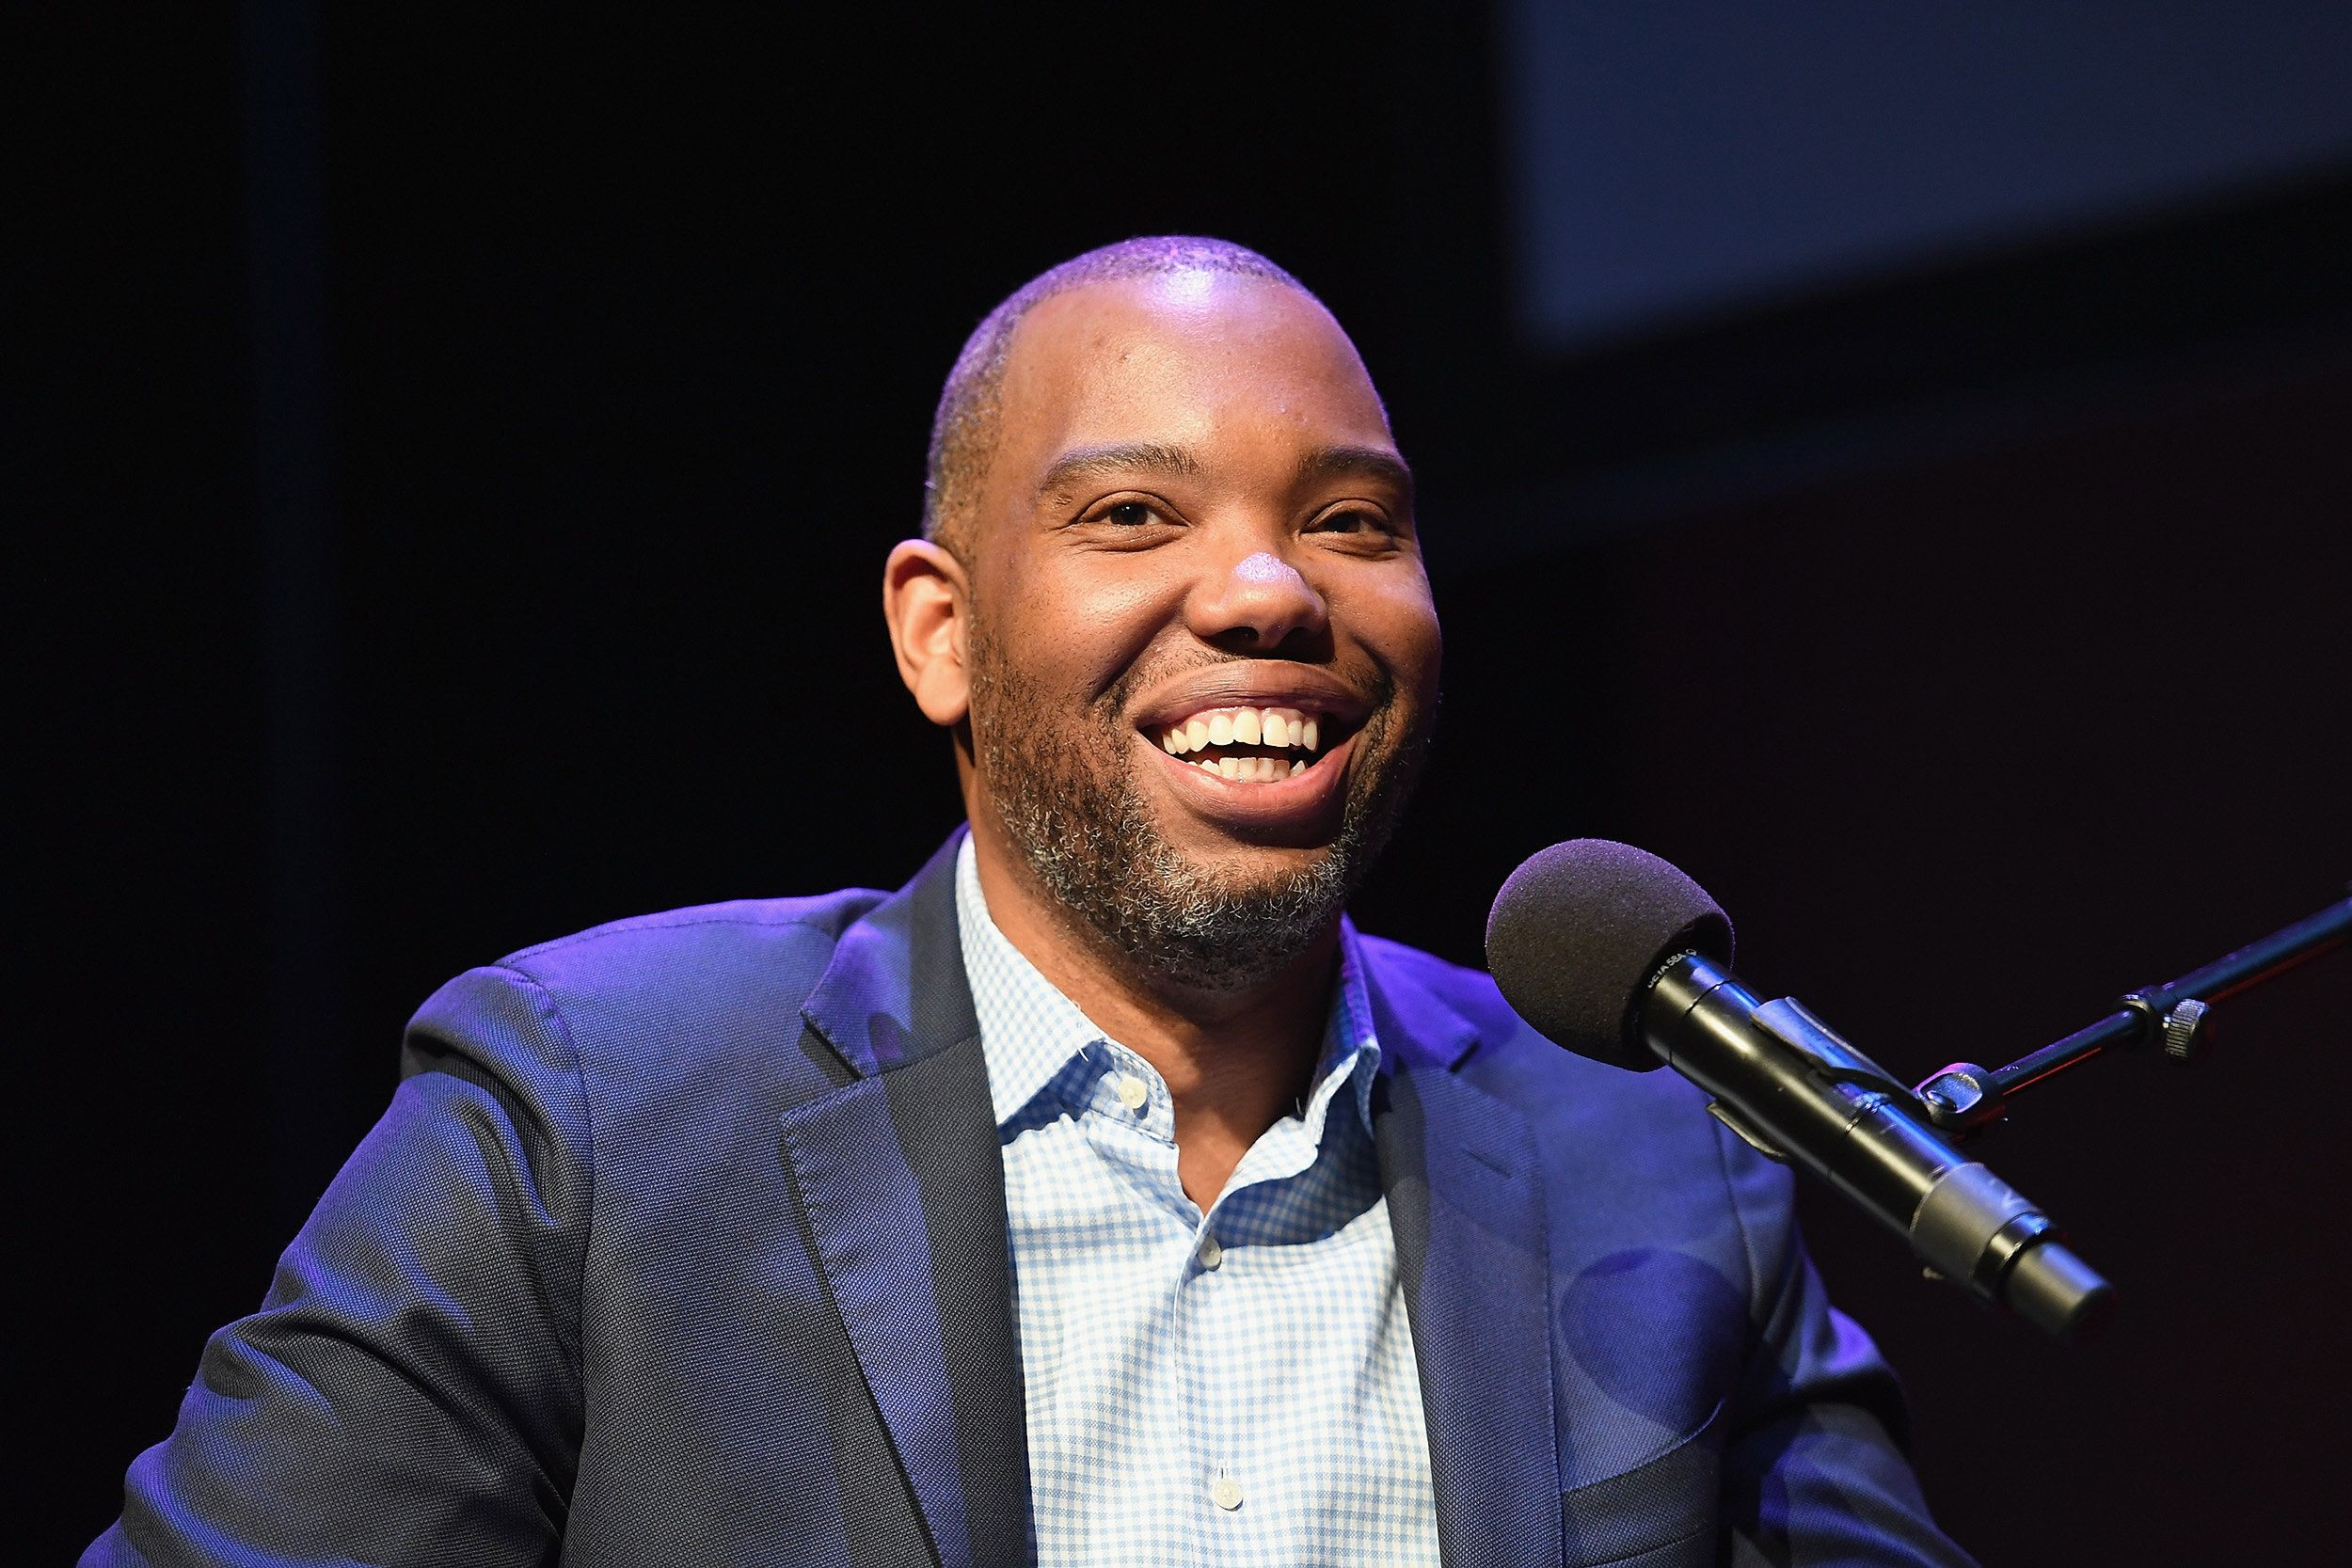 NEW YORK, NY - FEBRUARY 27: Author Ta-Nehisi Coates attends a panel at The Apollo Theater on February 27, 2018 in New York City.  (Photo by Shahar Azran/WireImage)